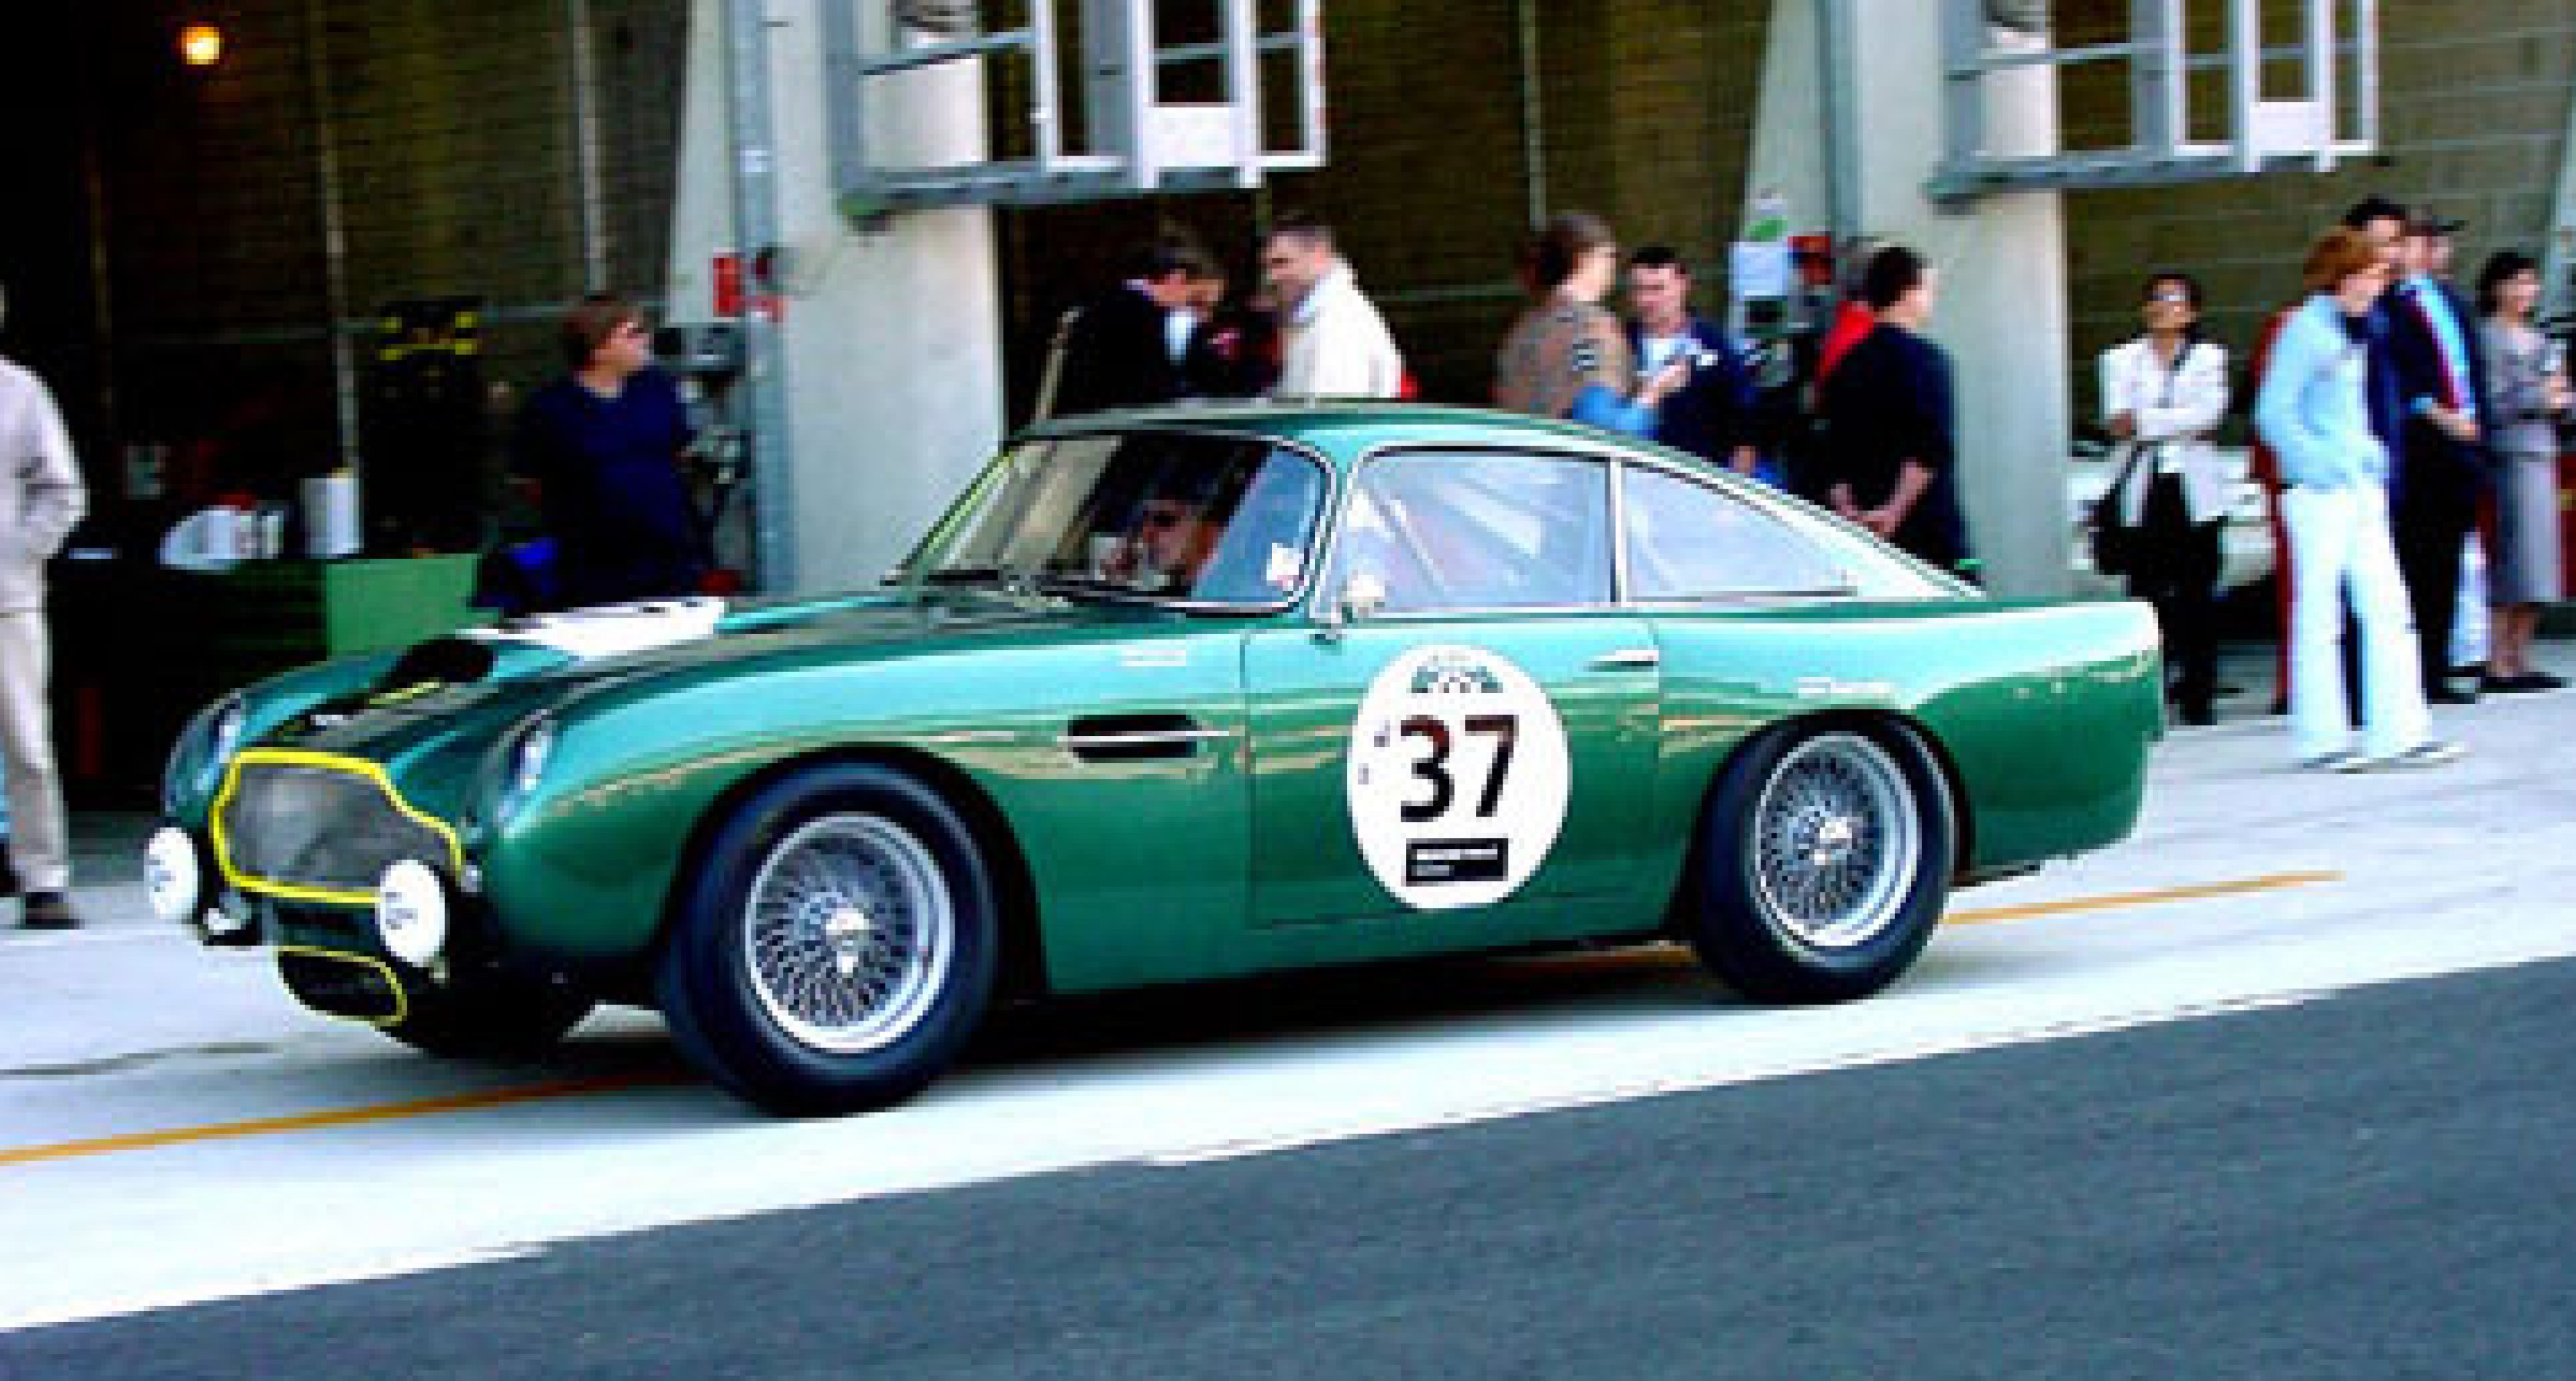 Le Mans Classic 2004 - preliminary entries revealed